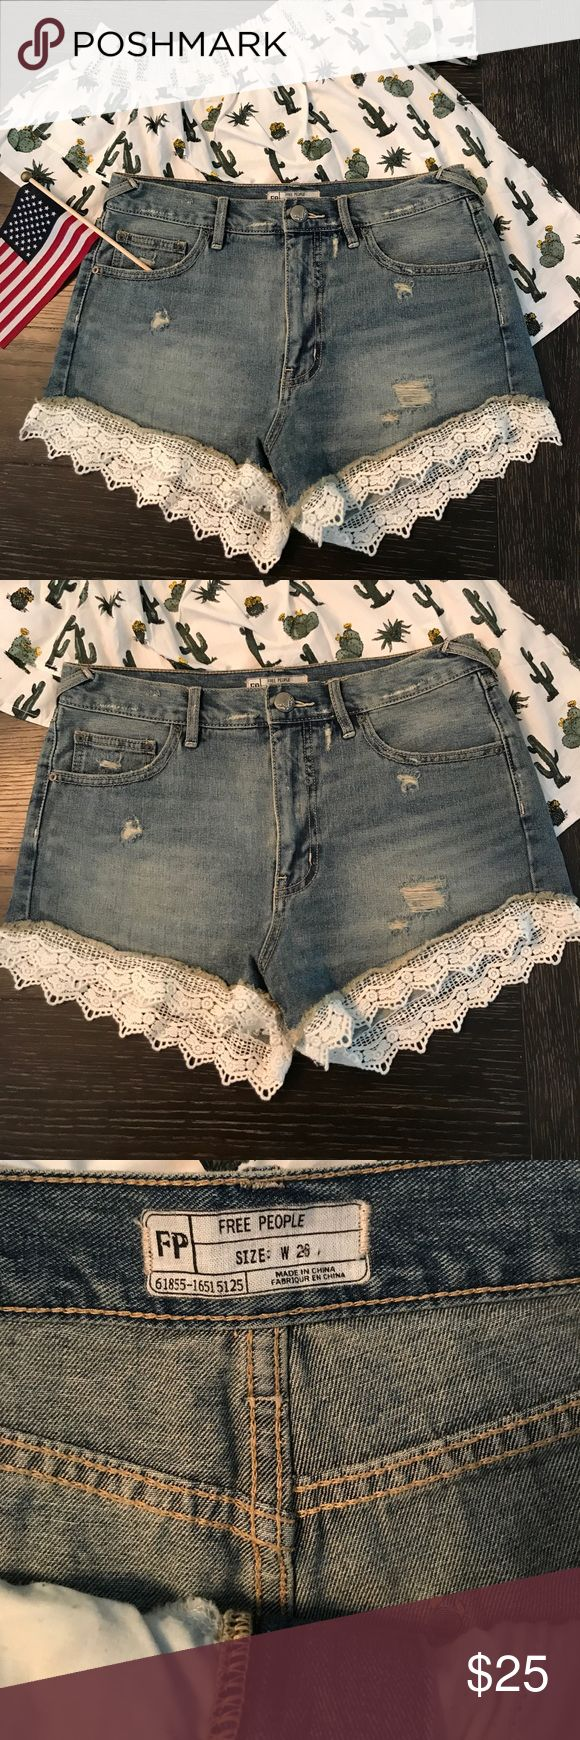 Free People Lace trim shorts In like new condition but since losing weight they don't fit. Free People Shorts Jean Shorts